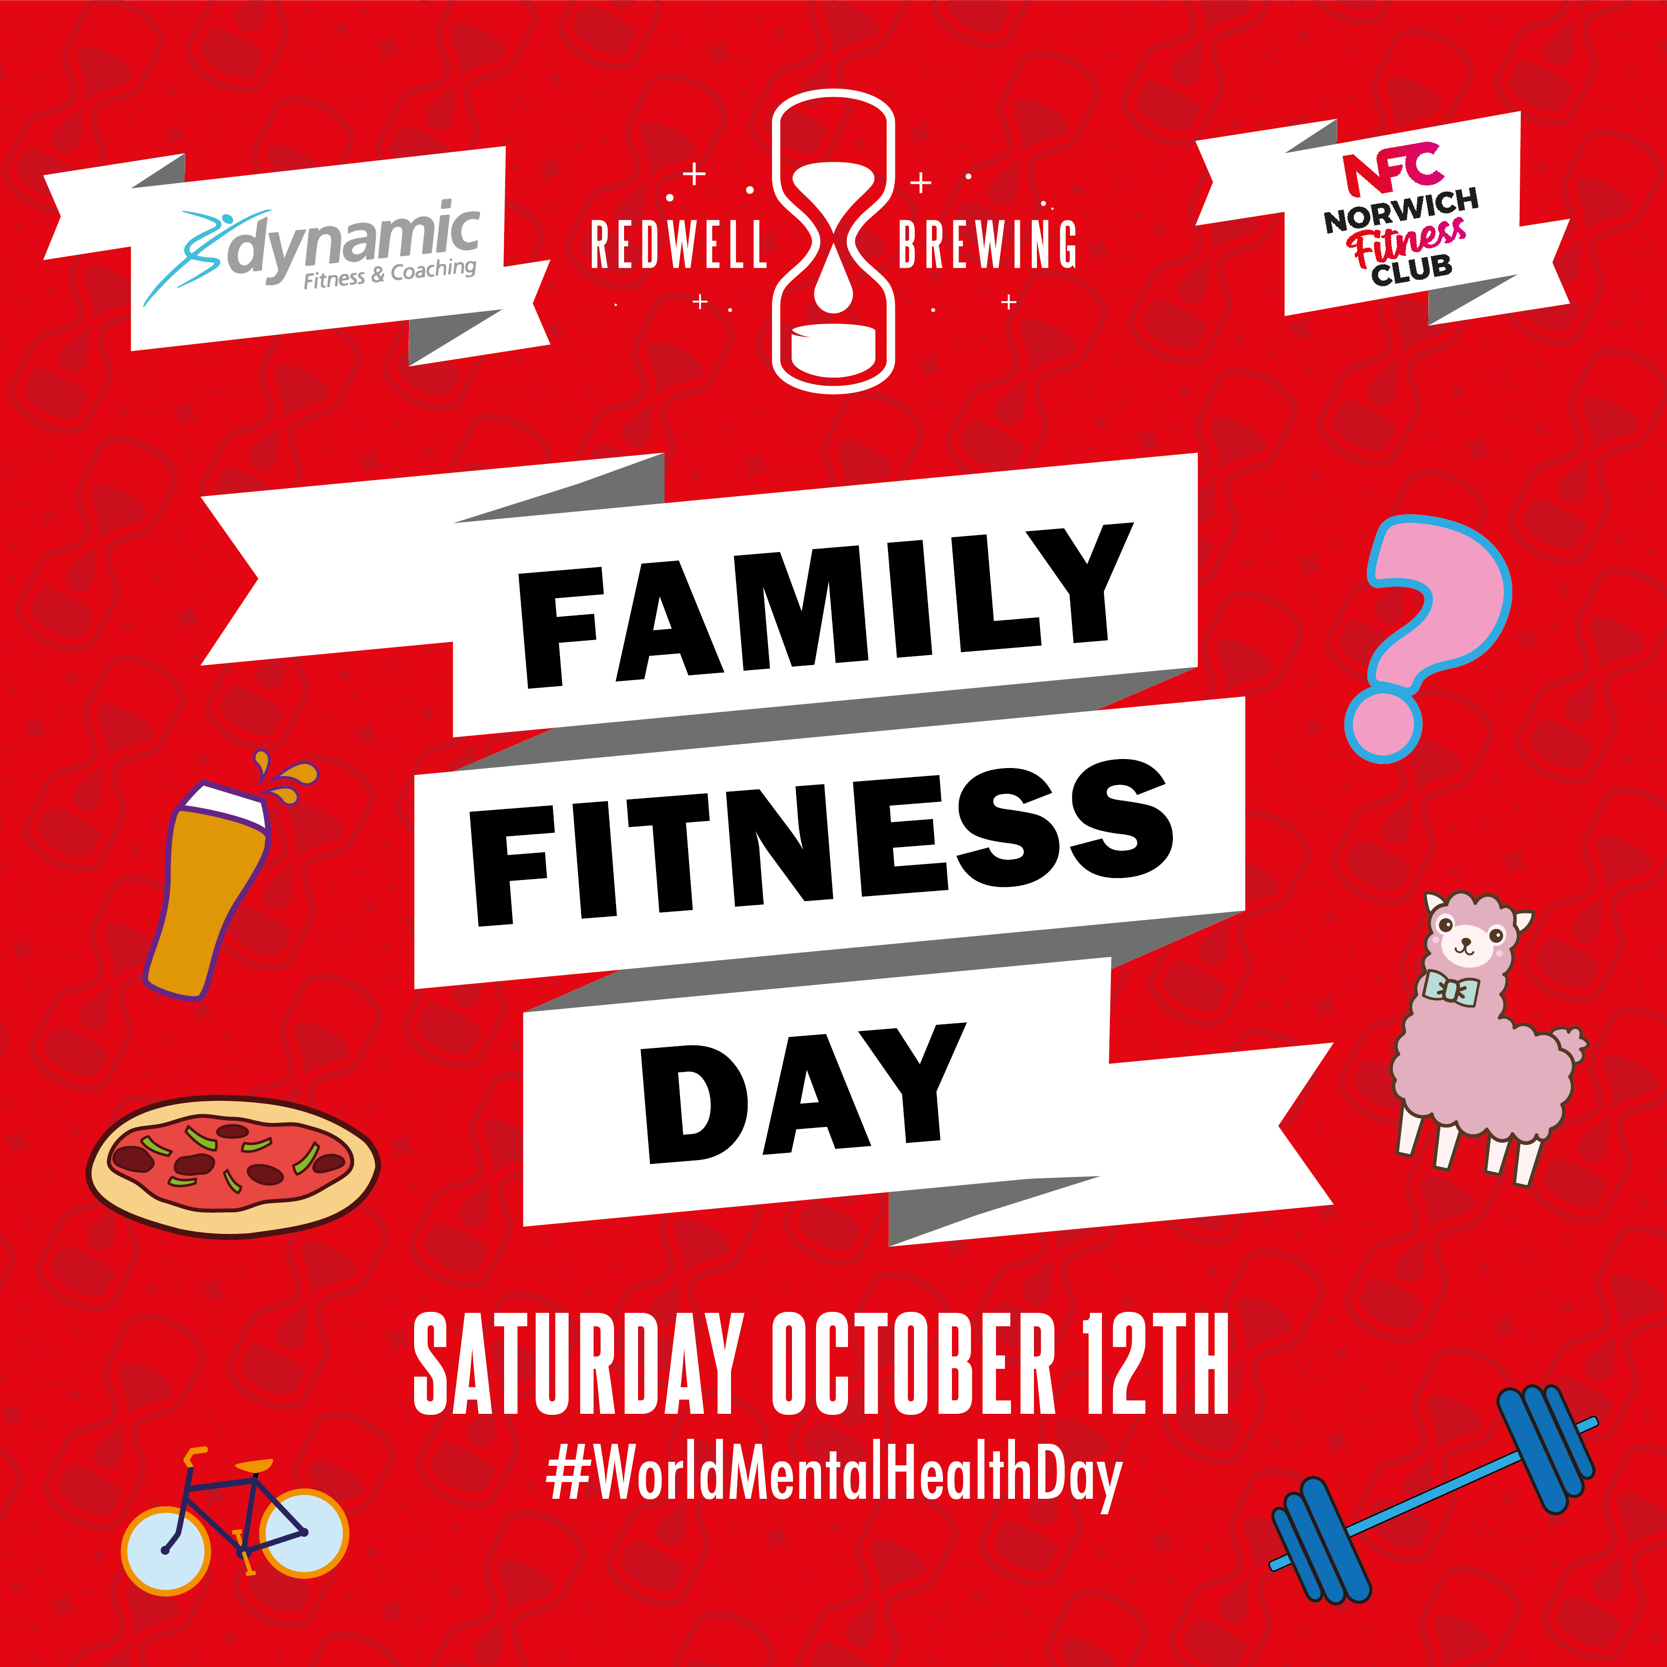 Family fitness day Social Post-02.png